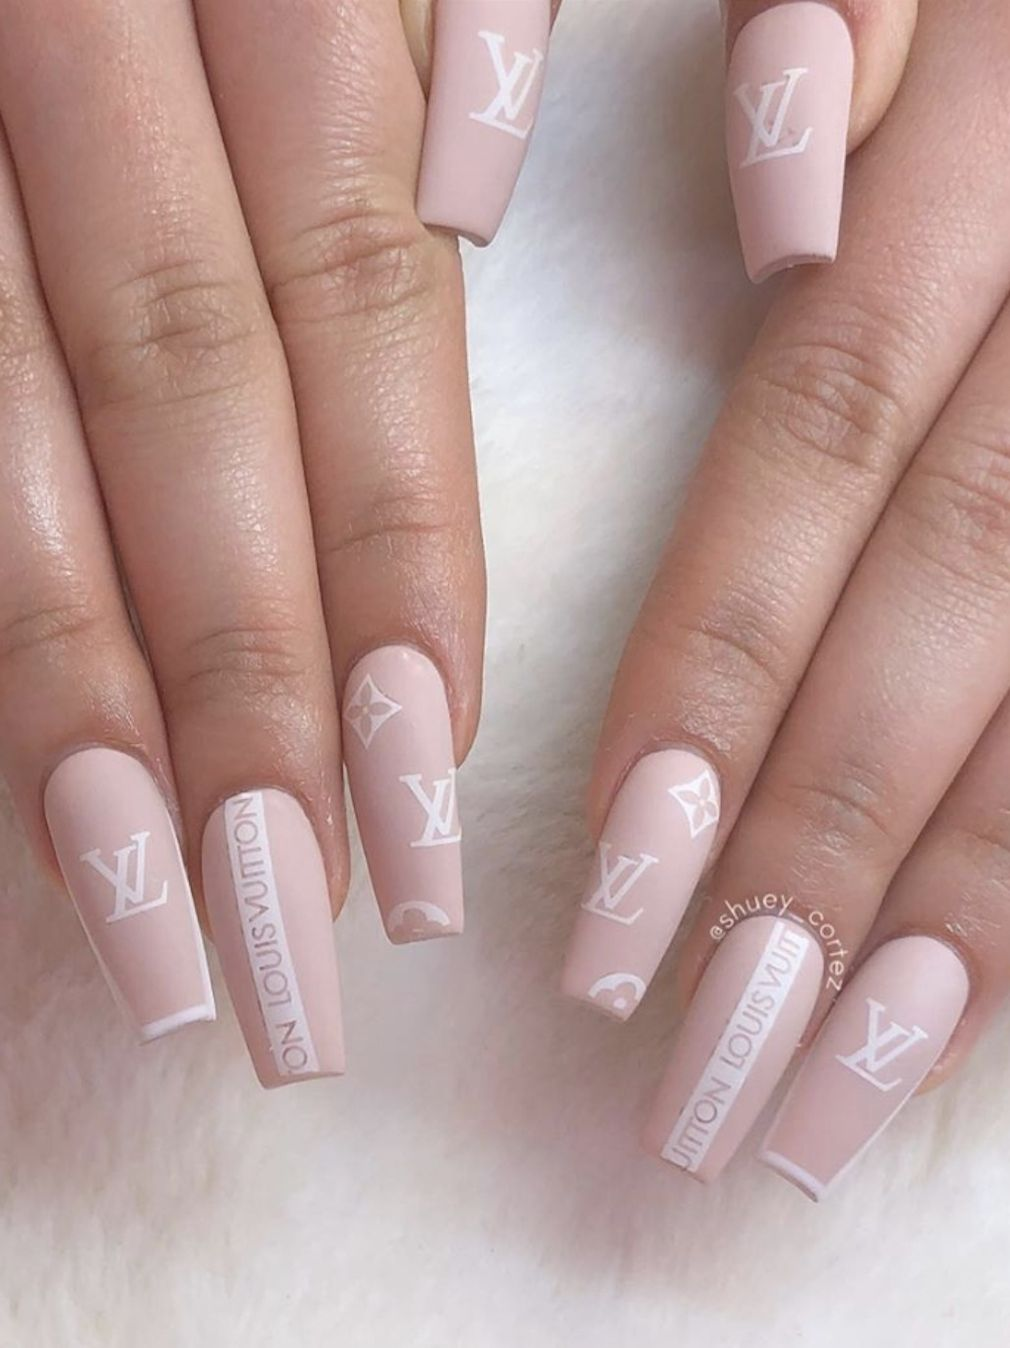 50 Stunning Spring Nails Nail Art Designs To Try This Year In 2020 Long Acrylic Nails Acrylic Nails Swag Nails Shop authentic louis vuitton kids at up to 90% off.